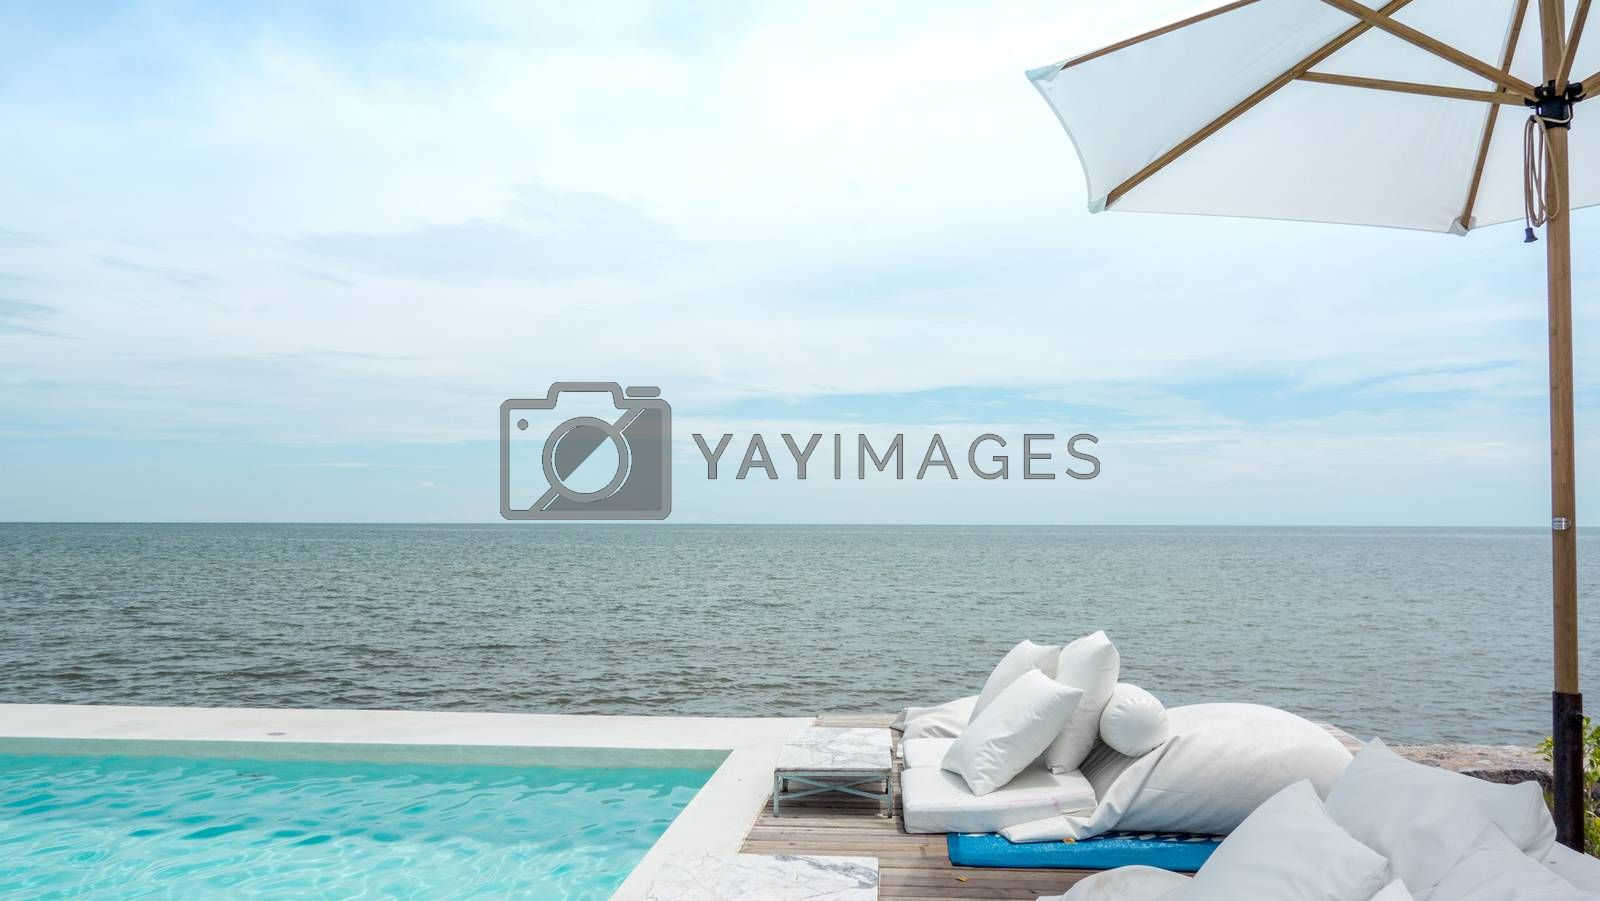 Luxury swimming pool and blue water at the resort with beautiful by Kingsman911